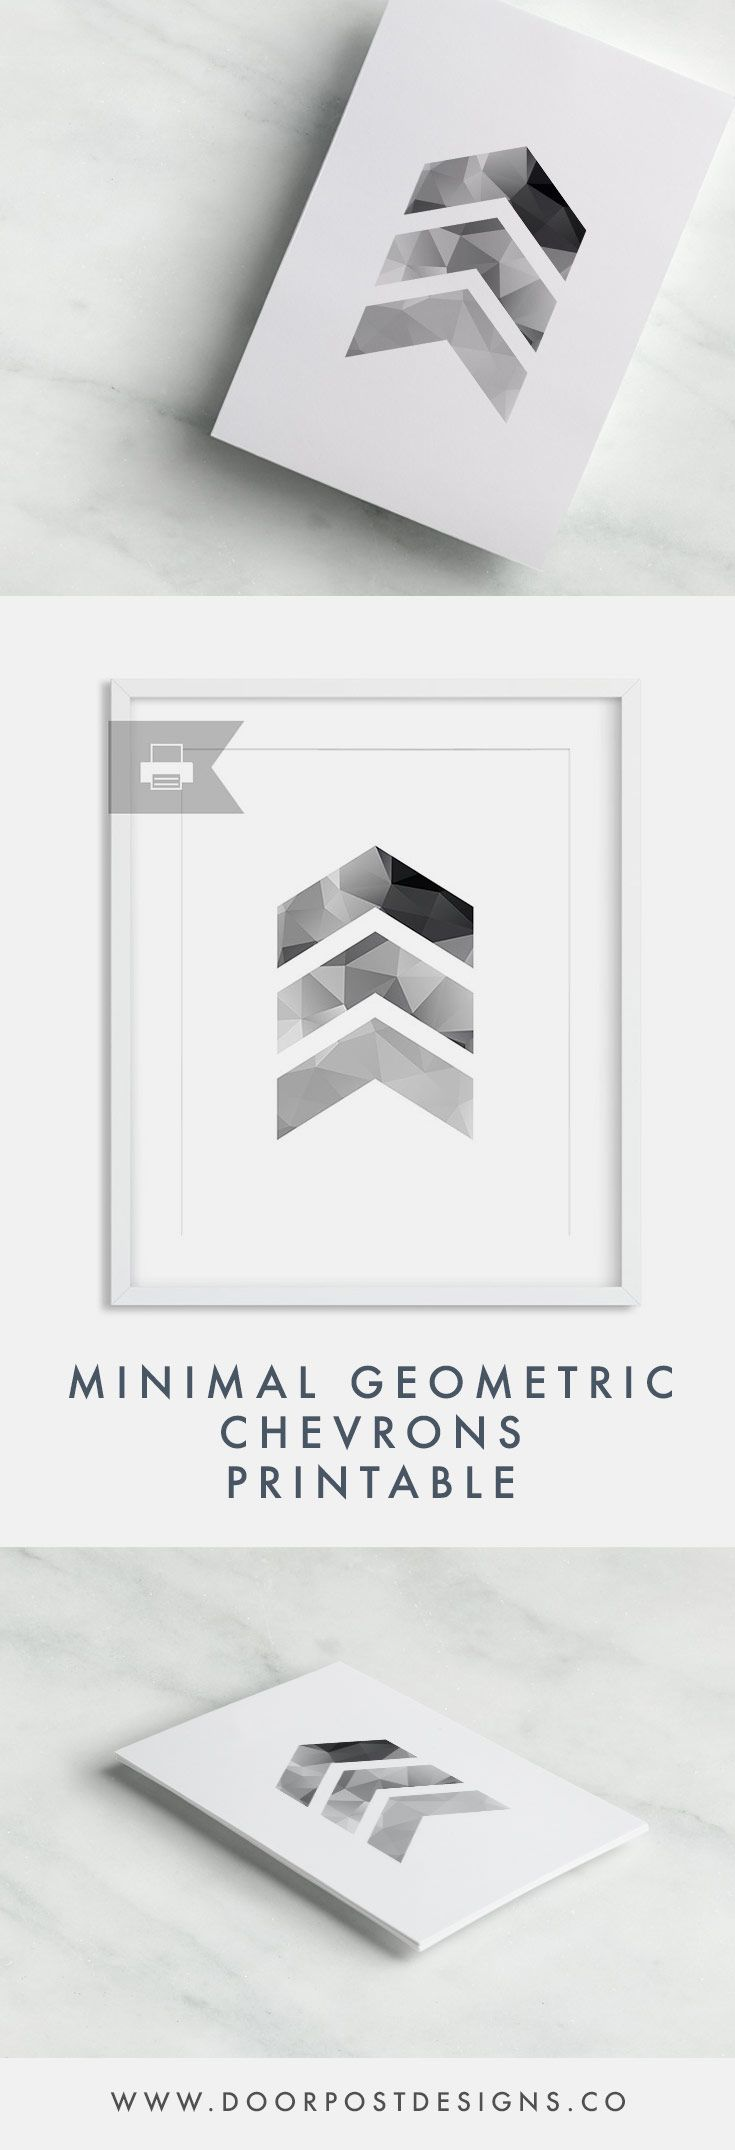 Minimal Geometric Chevrons Printable by Doorpost Designs // minimal art, geometric art, forest, printable, minimalism, triangleshome office, clean modern office, office inspiration, minimalistic, minimalism